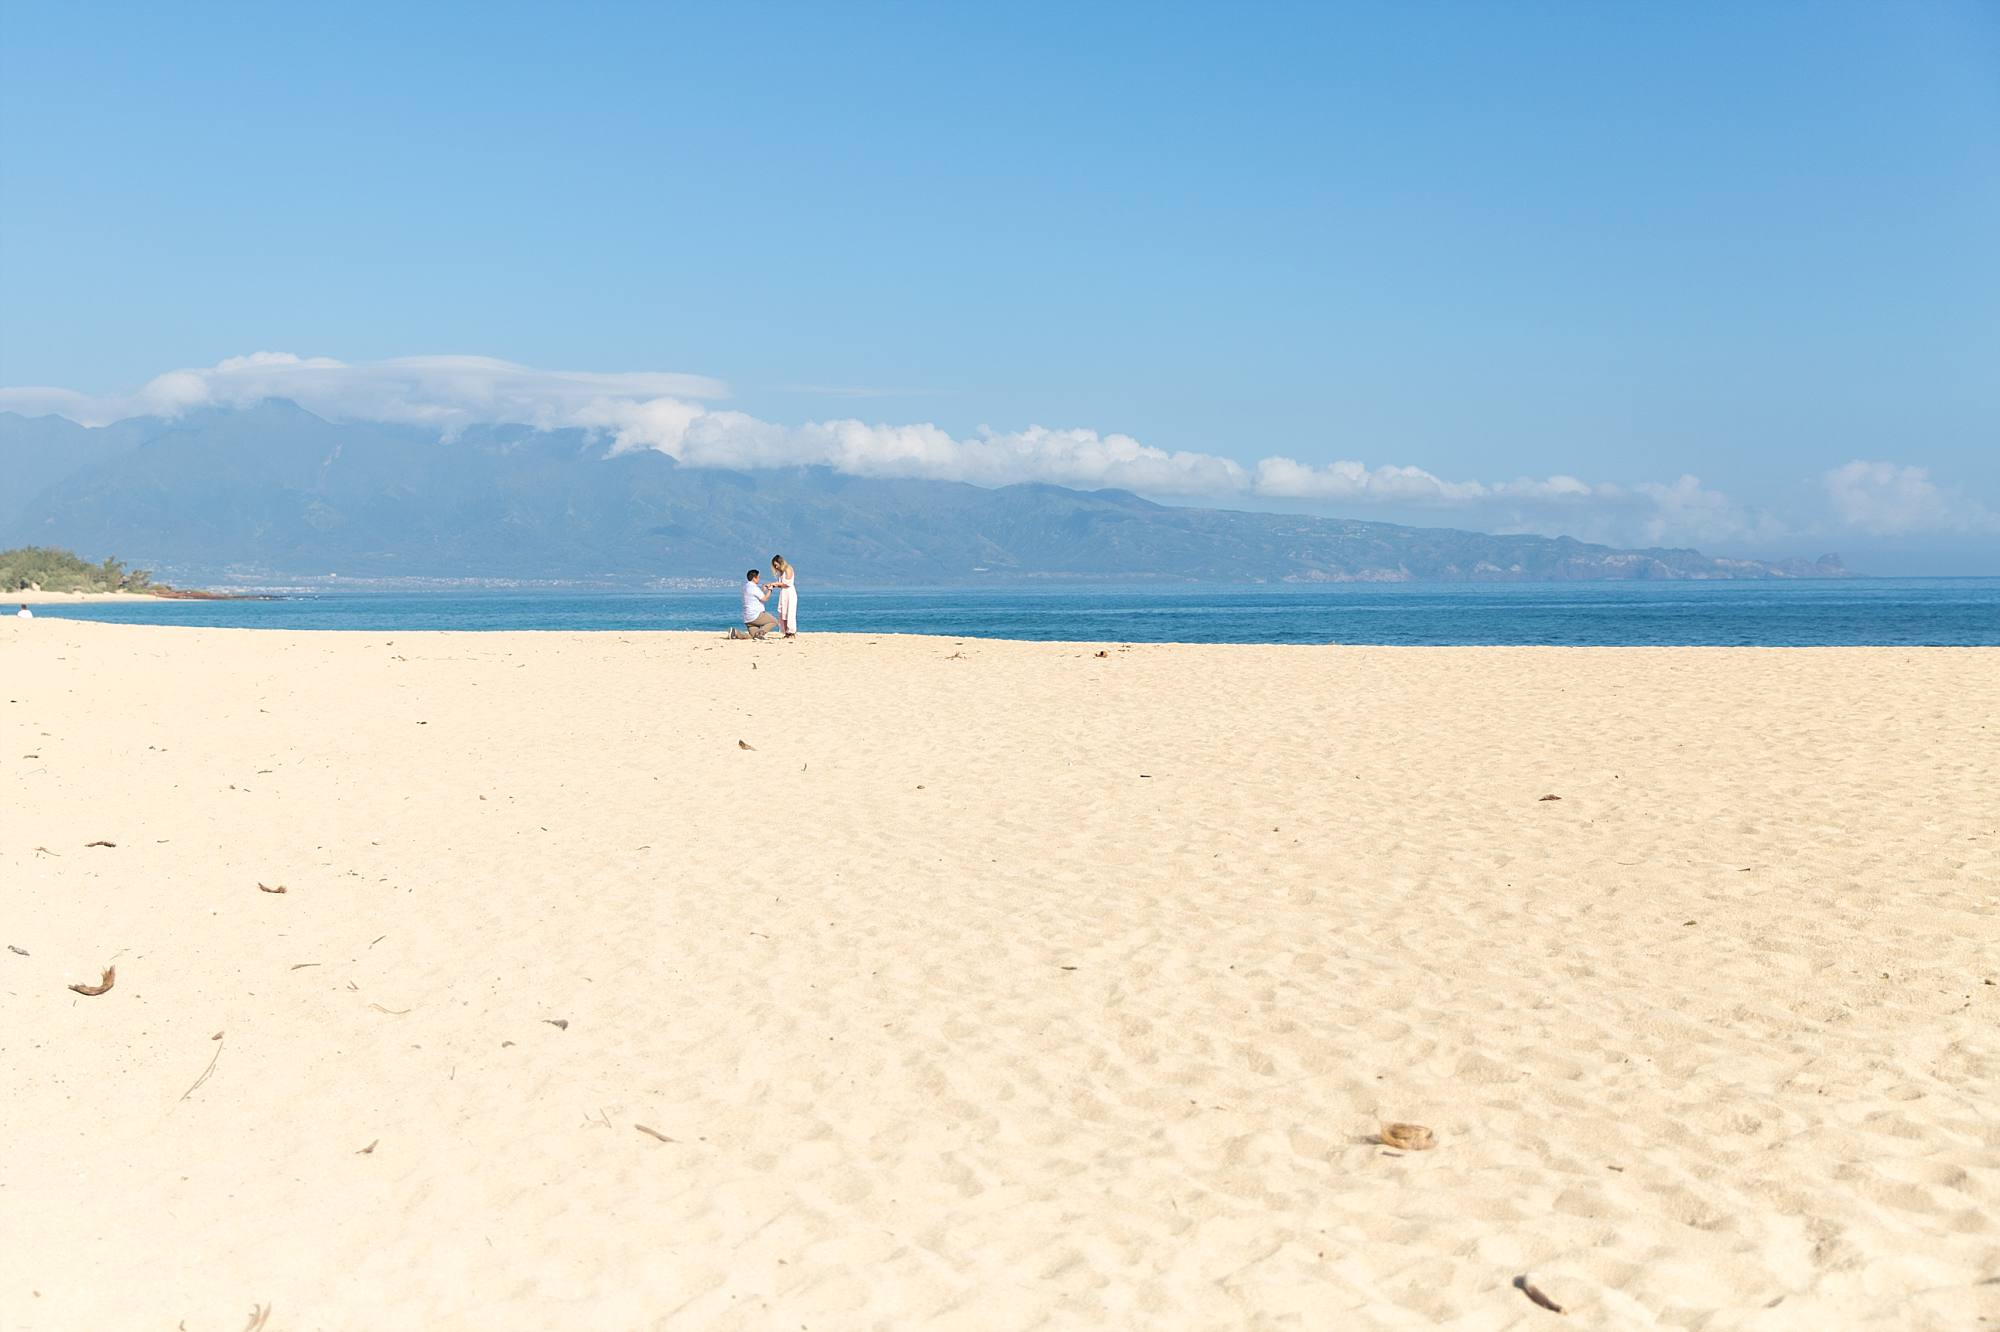 incredible shot of a man proposing to his girlfriend on beautiful white sand beach on Maui